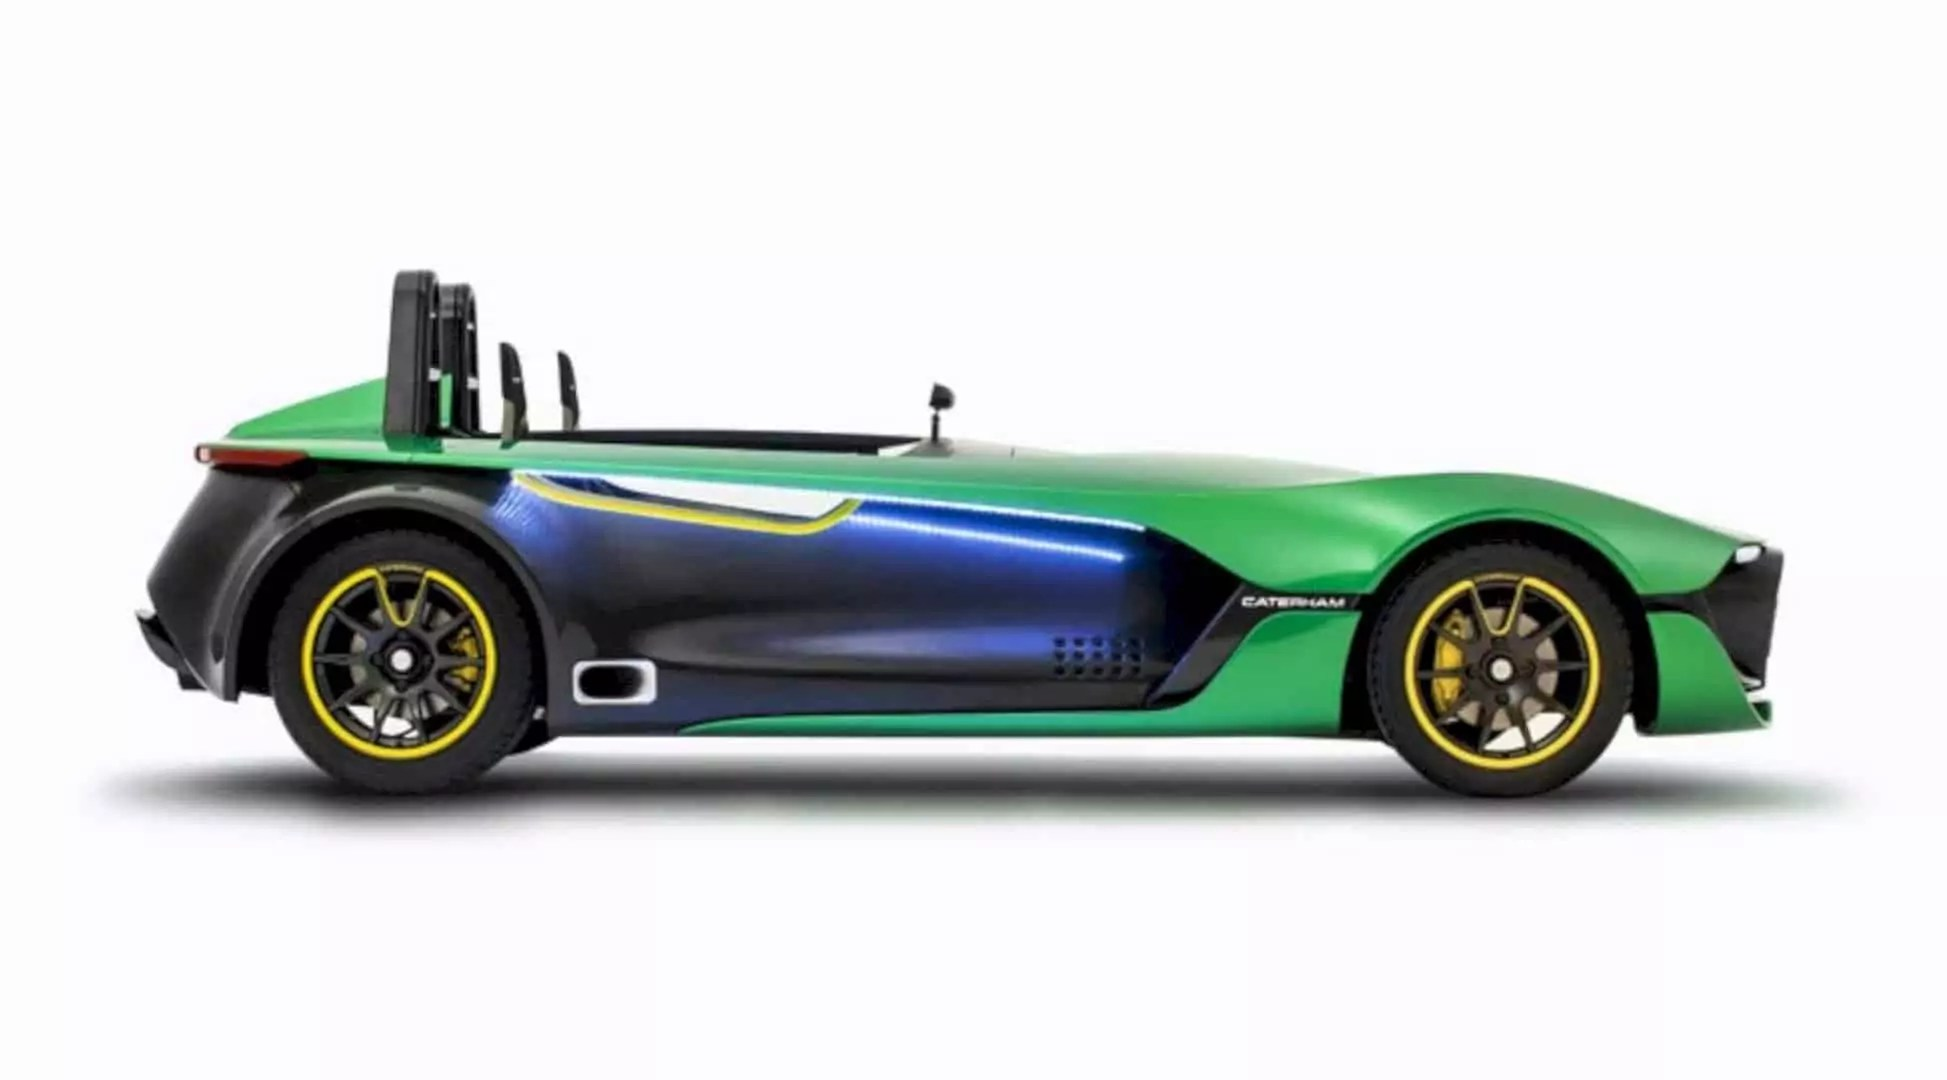 The Aero Seven Concept: The First in Line of The Next Generation of Caterham Cars